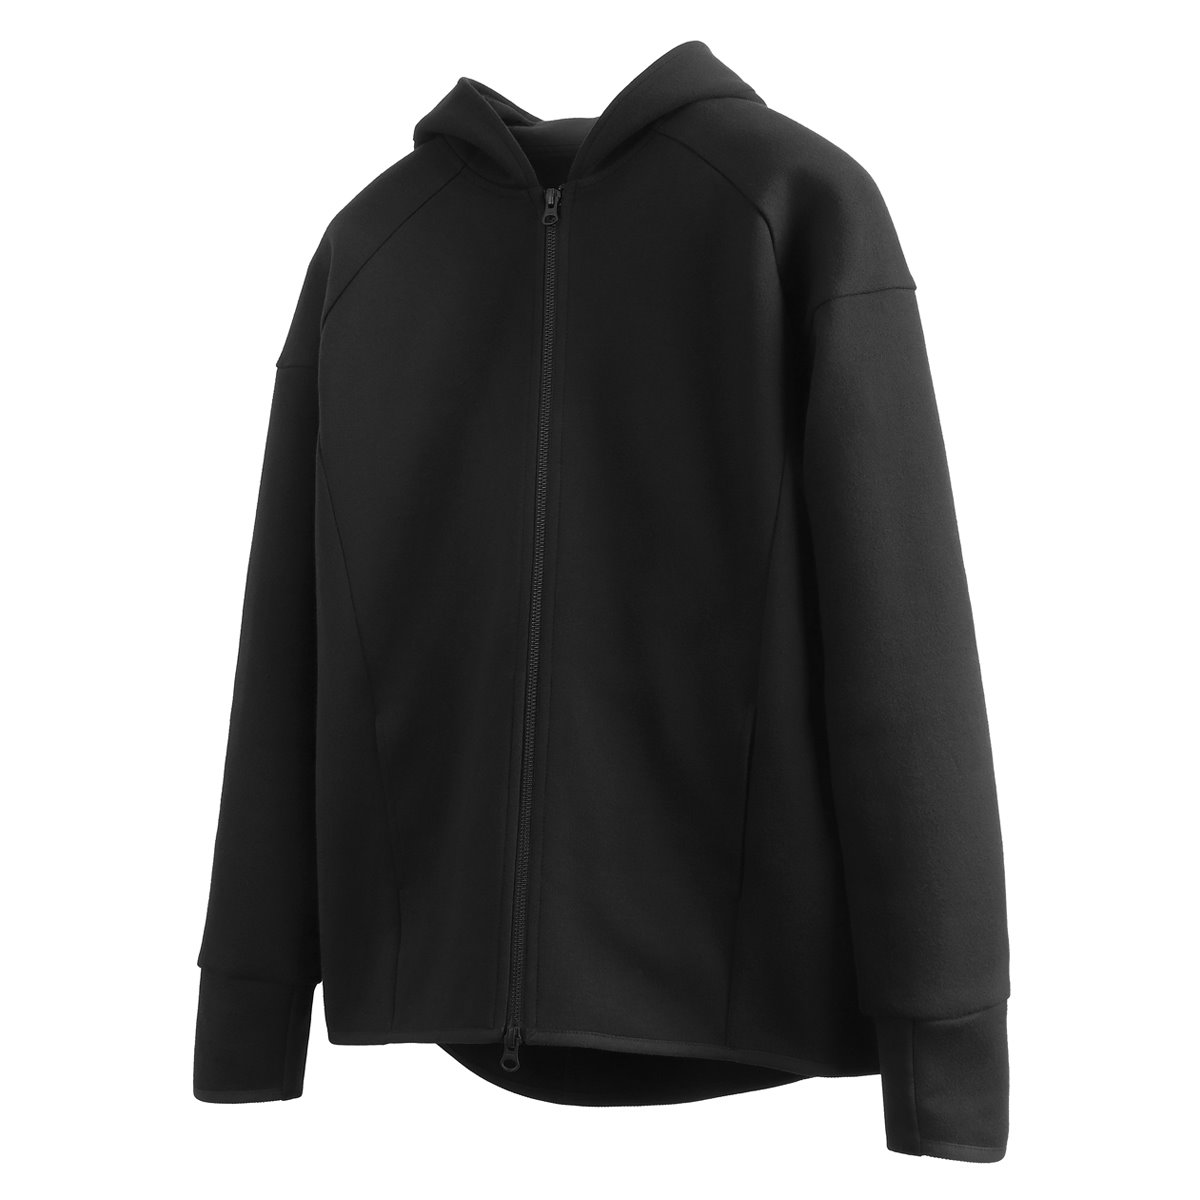 RG-02-CORE-V9SH/V2 - Winter (Shell Hoody)